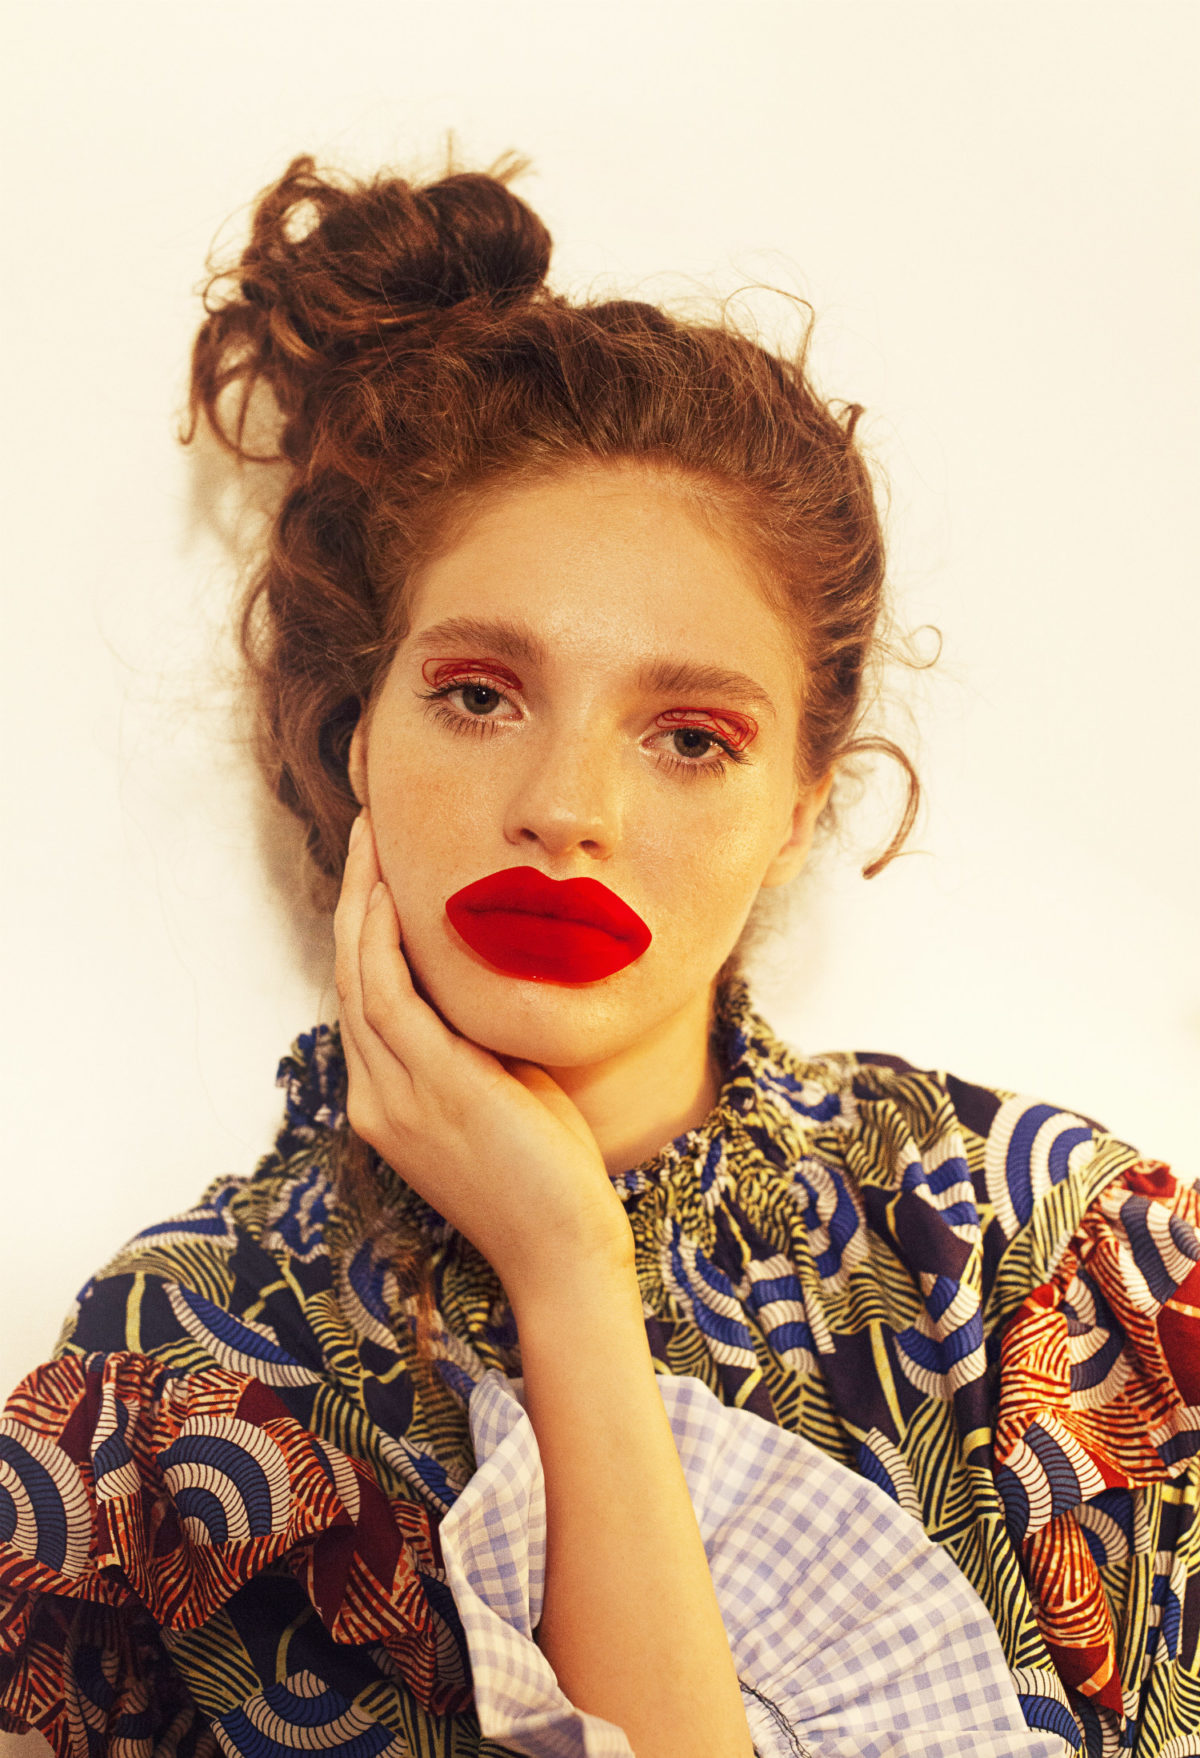 ROXANA ENACHE REDEFINES THE ULTIMATE RED LIP